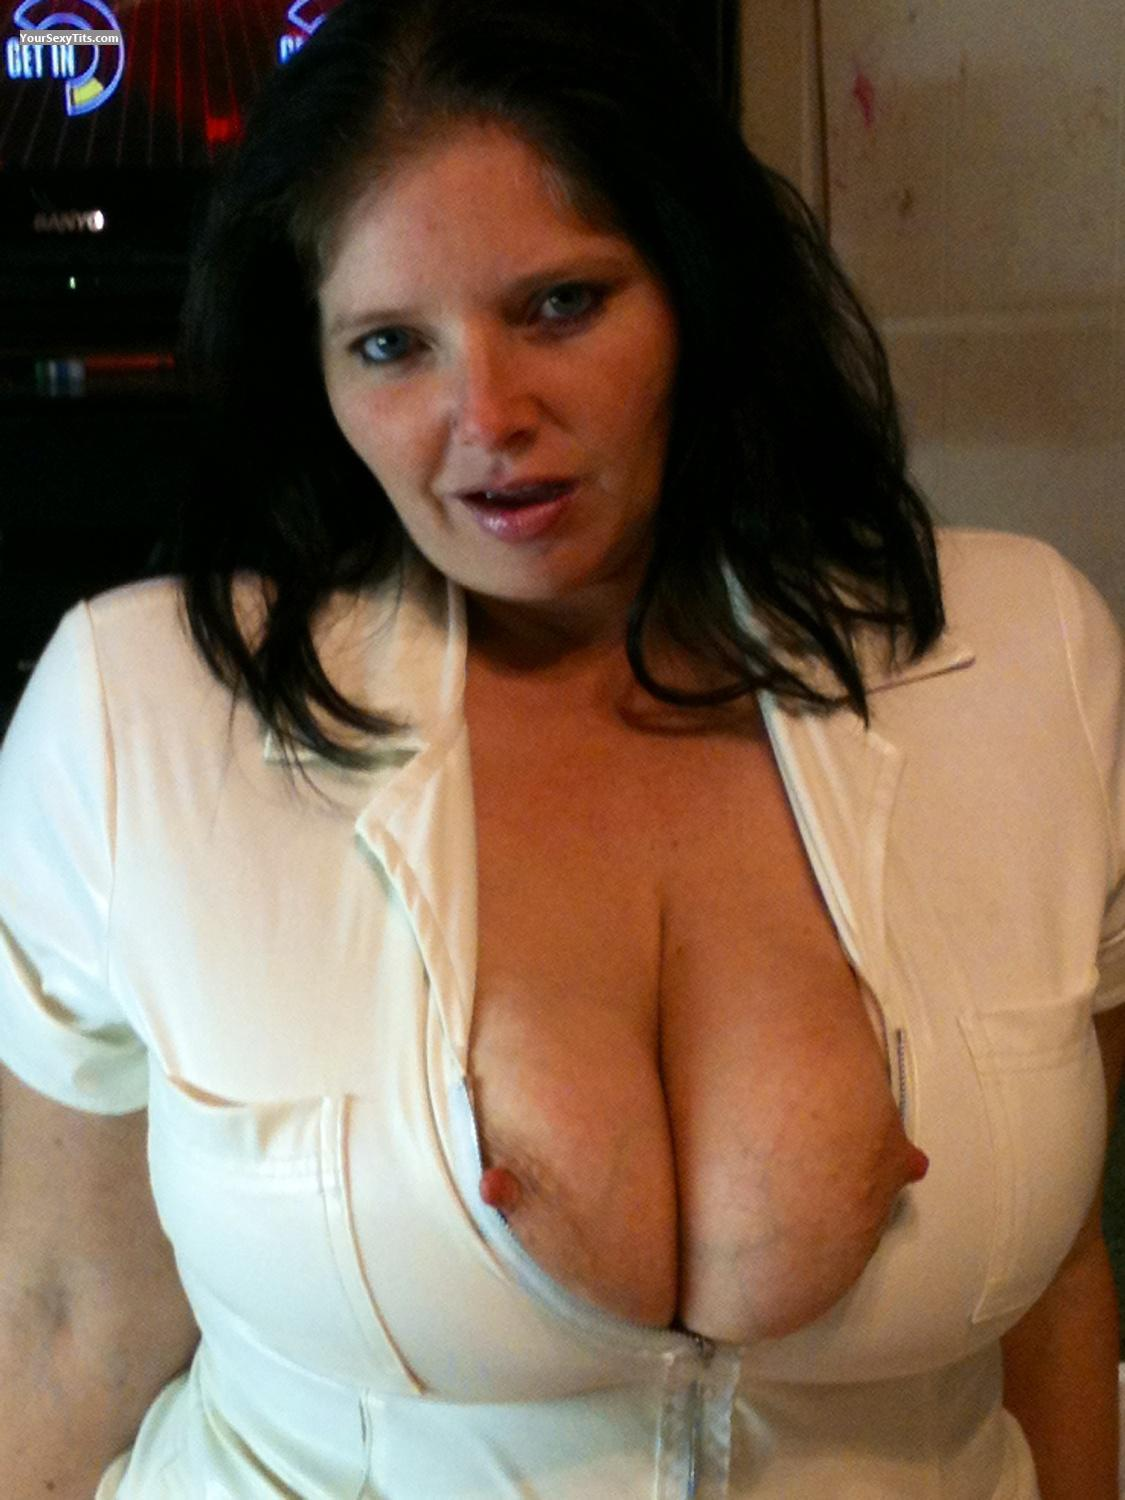 Tit Flash: Extremely Big Tits By IPhone - Topless Nurse Monkey from United States